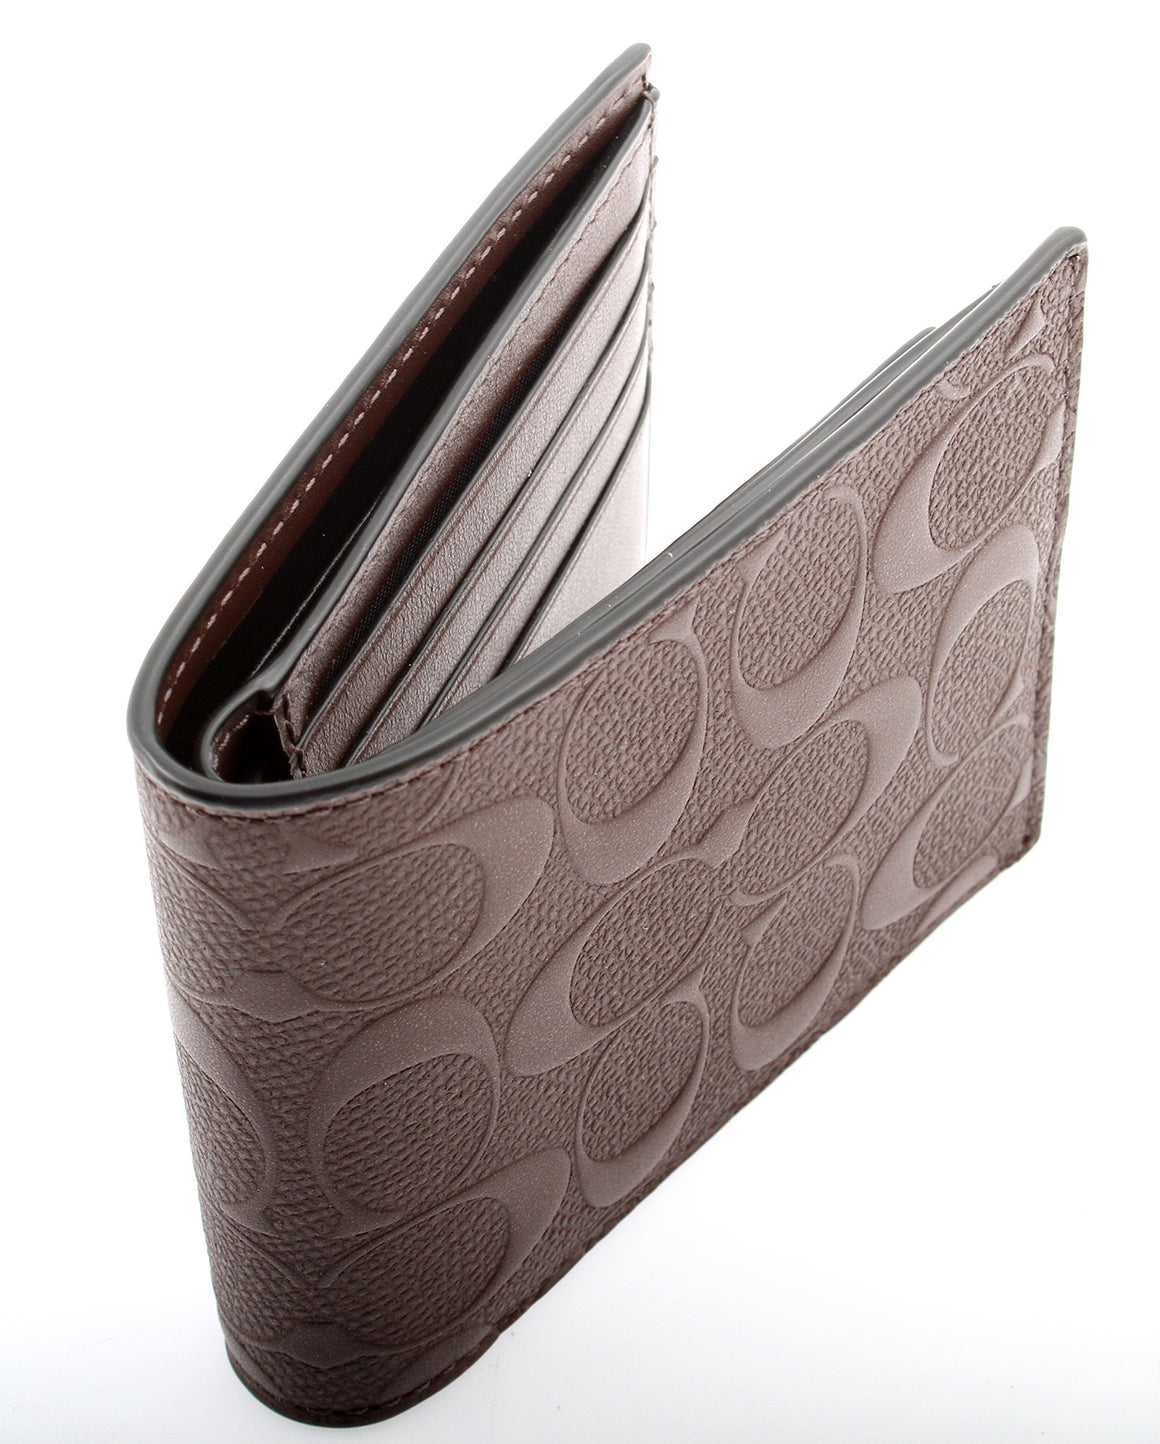 Compact Id Wallet In Signature Crossgrain Leather (Coach F75371) Mahogany Mens Wallets Coach